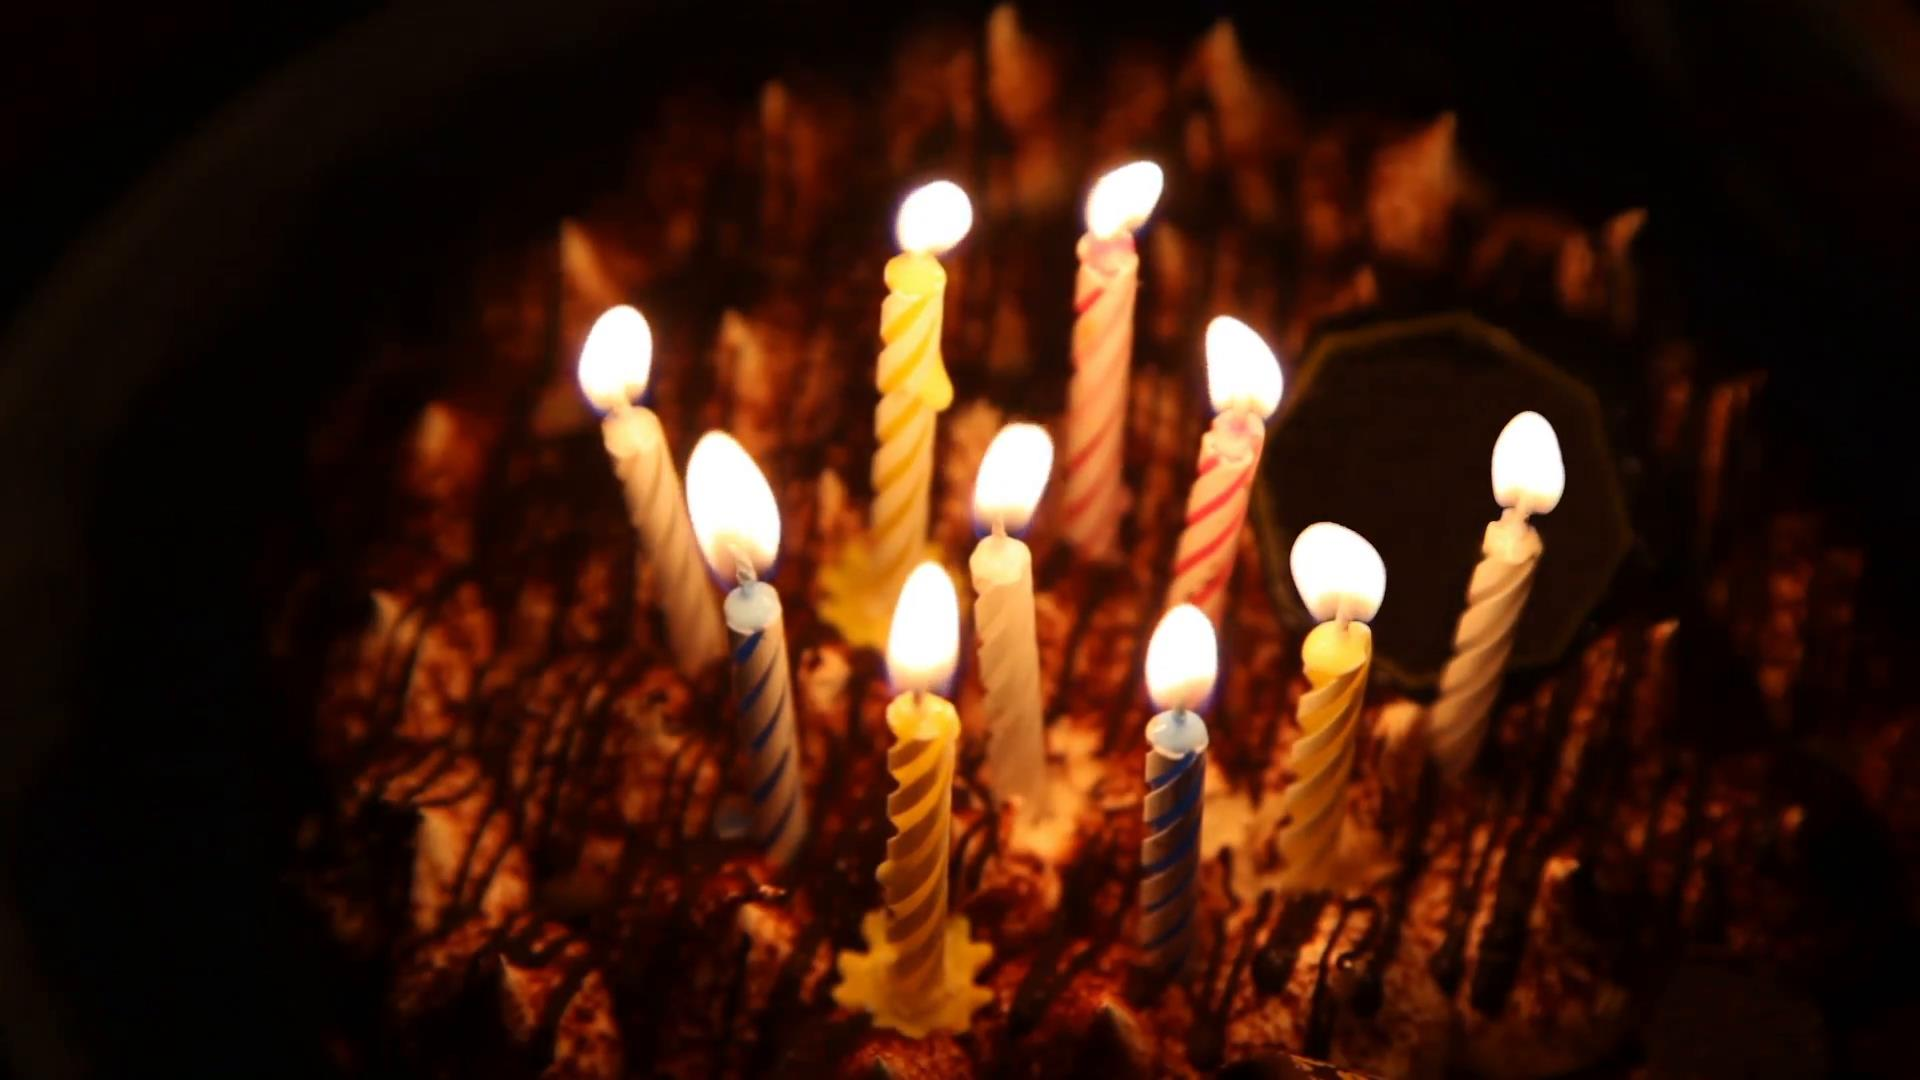 picture of birthday cake with burning candles ; happy-birthday-cake-with-burning-spiral-candles-which-are-then-extinguished_xjujovpto__F0000